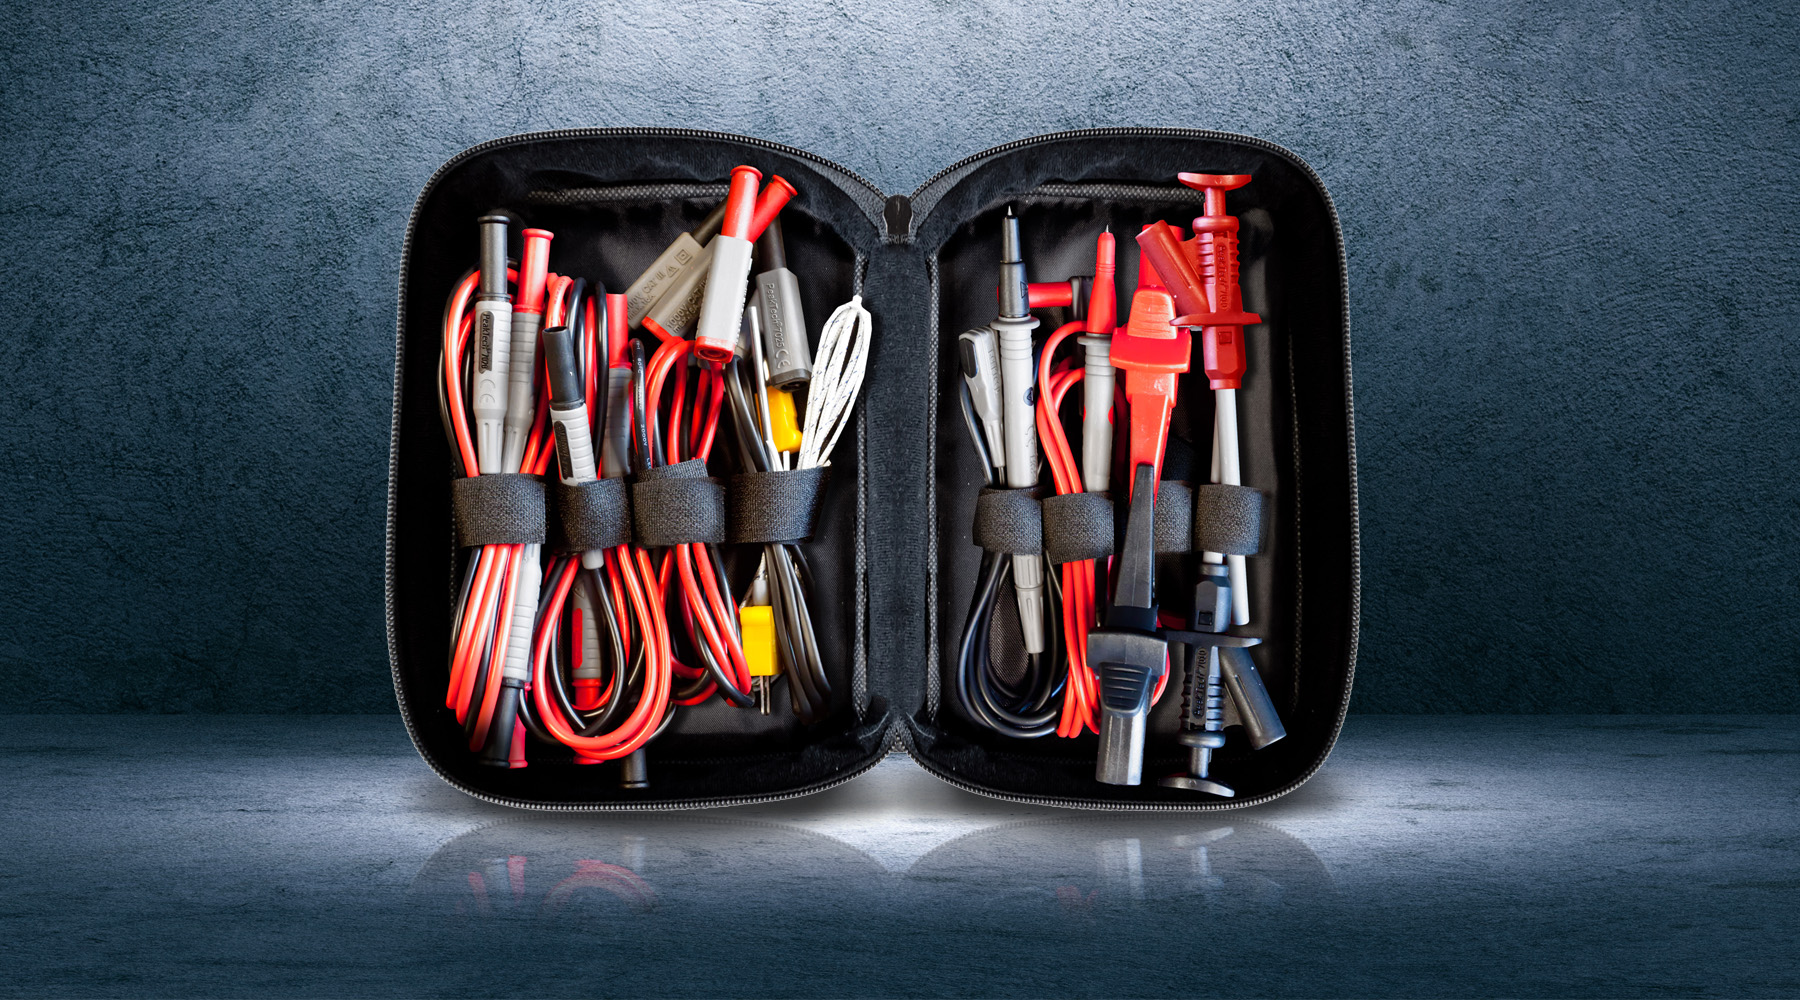 Measuring accessories sets